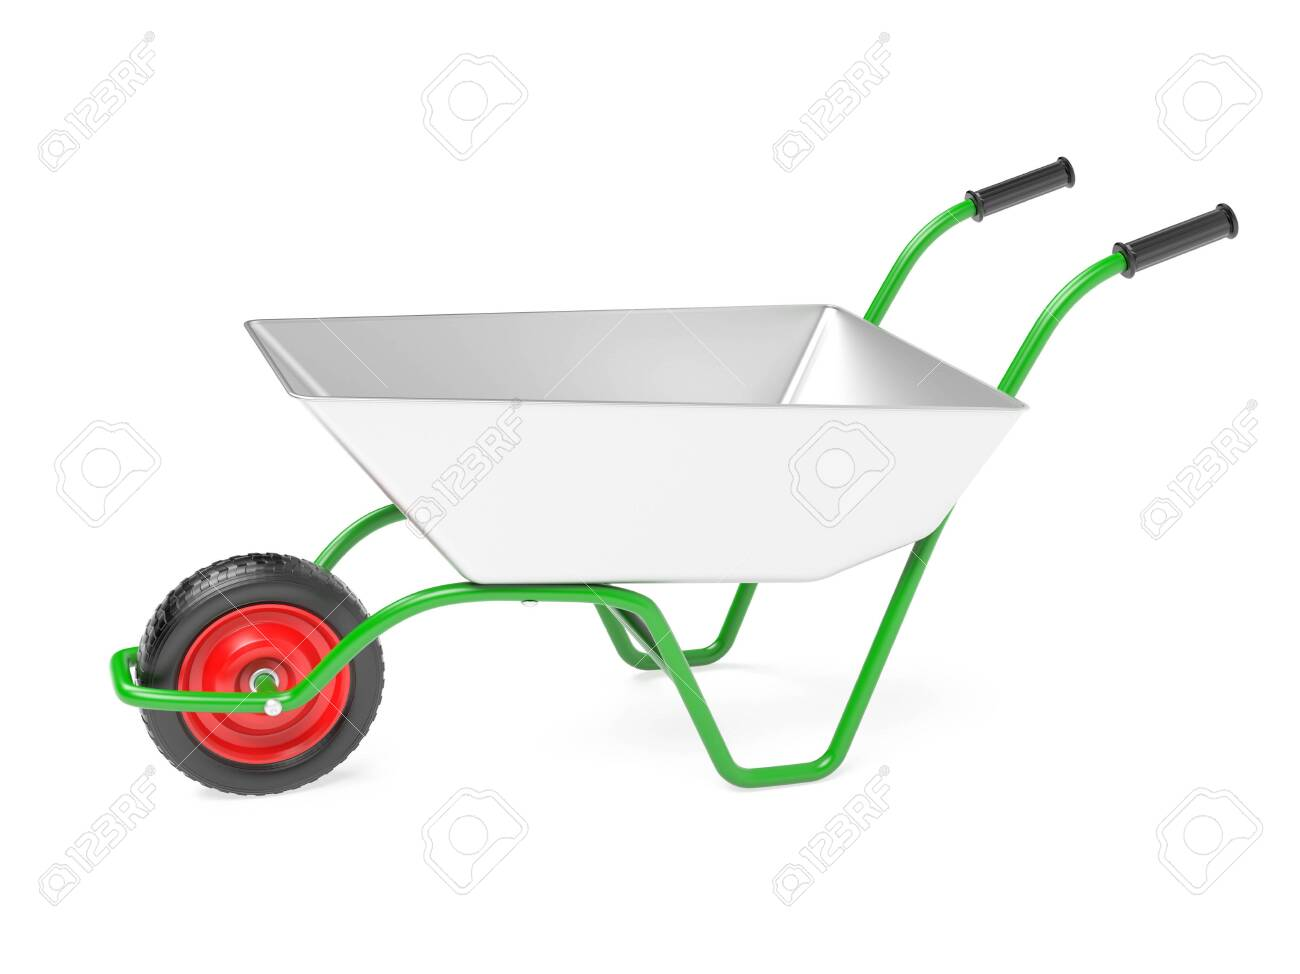 Metal garden barrow. 3d rendering illustration isolated on white background - 150190630